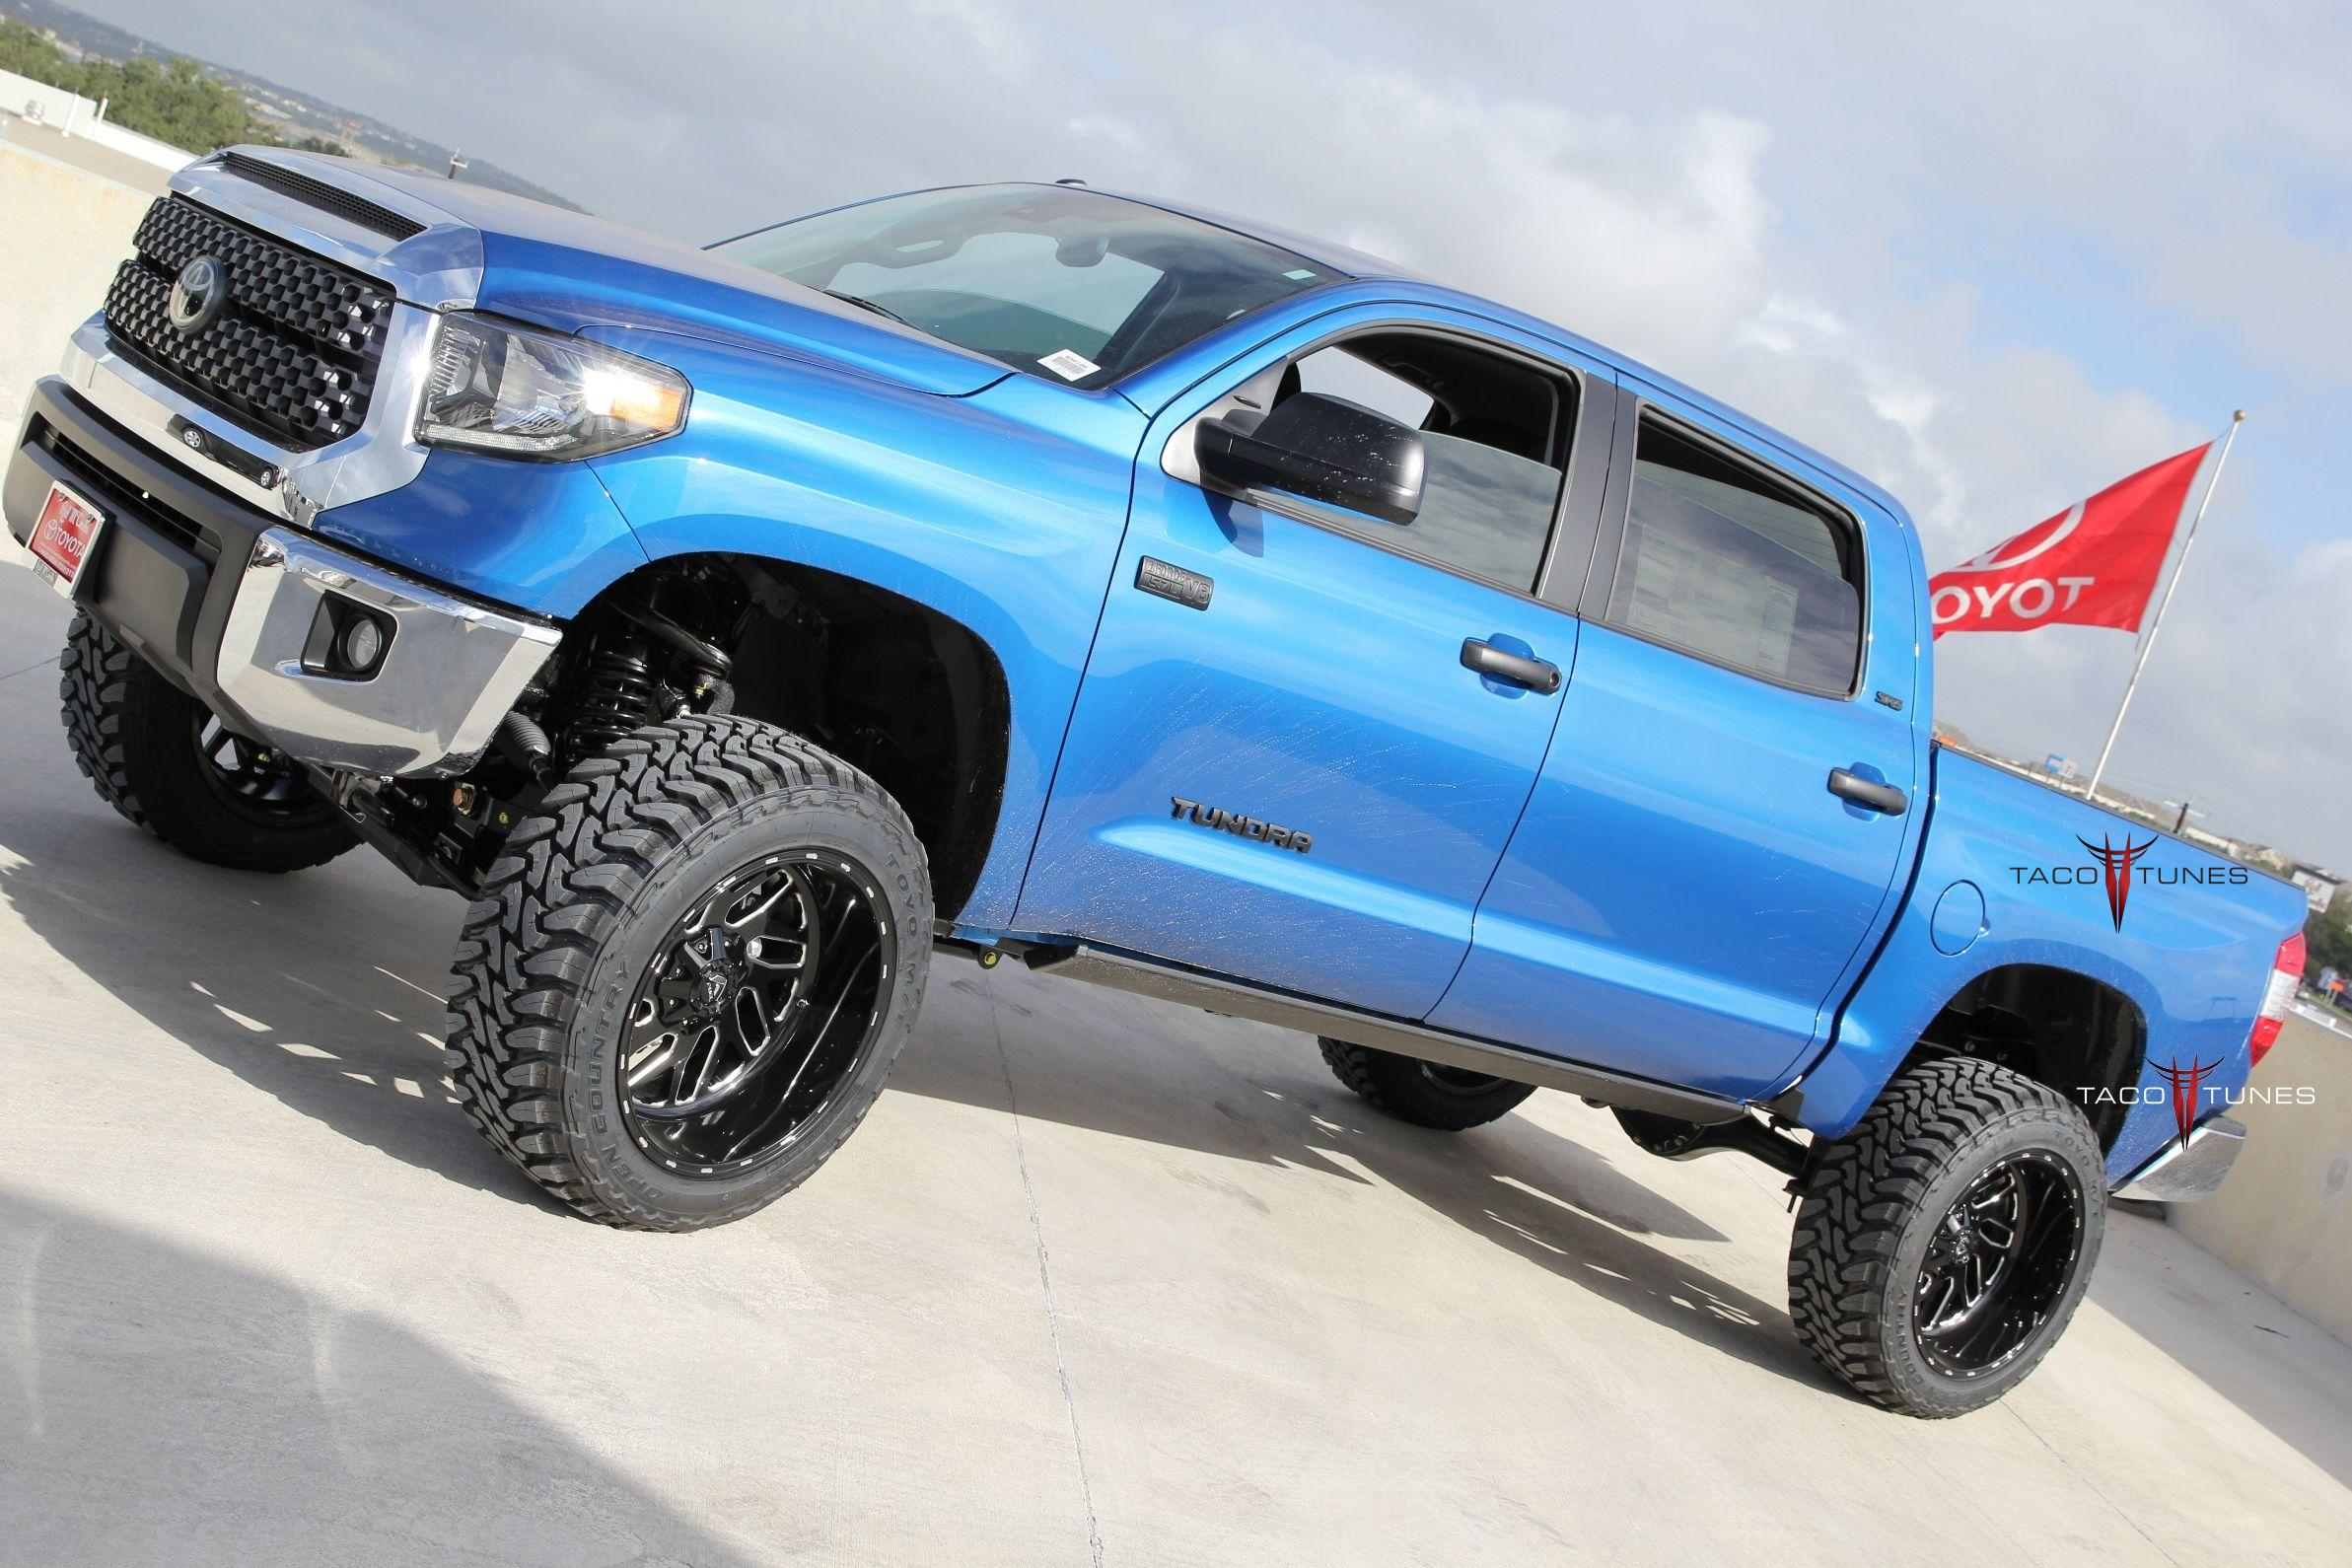 Tacotunes toyota audio upgrade solutions image is not available sciox Images